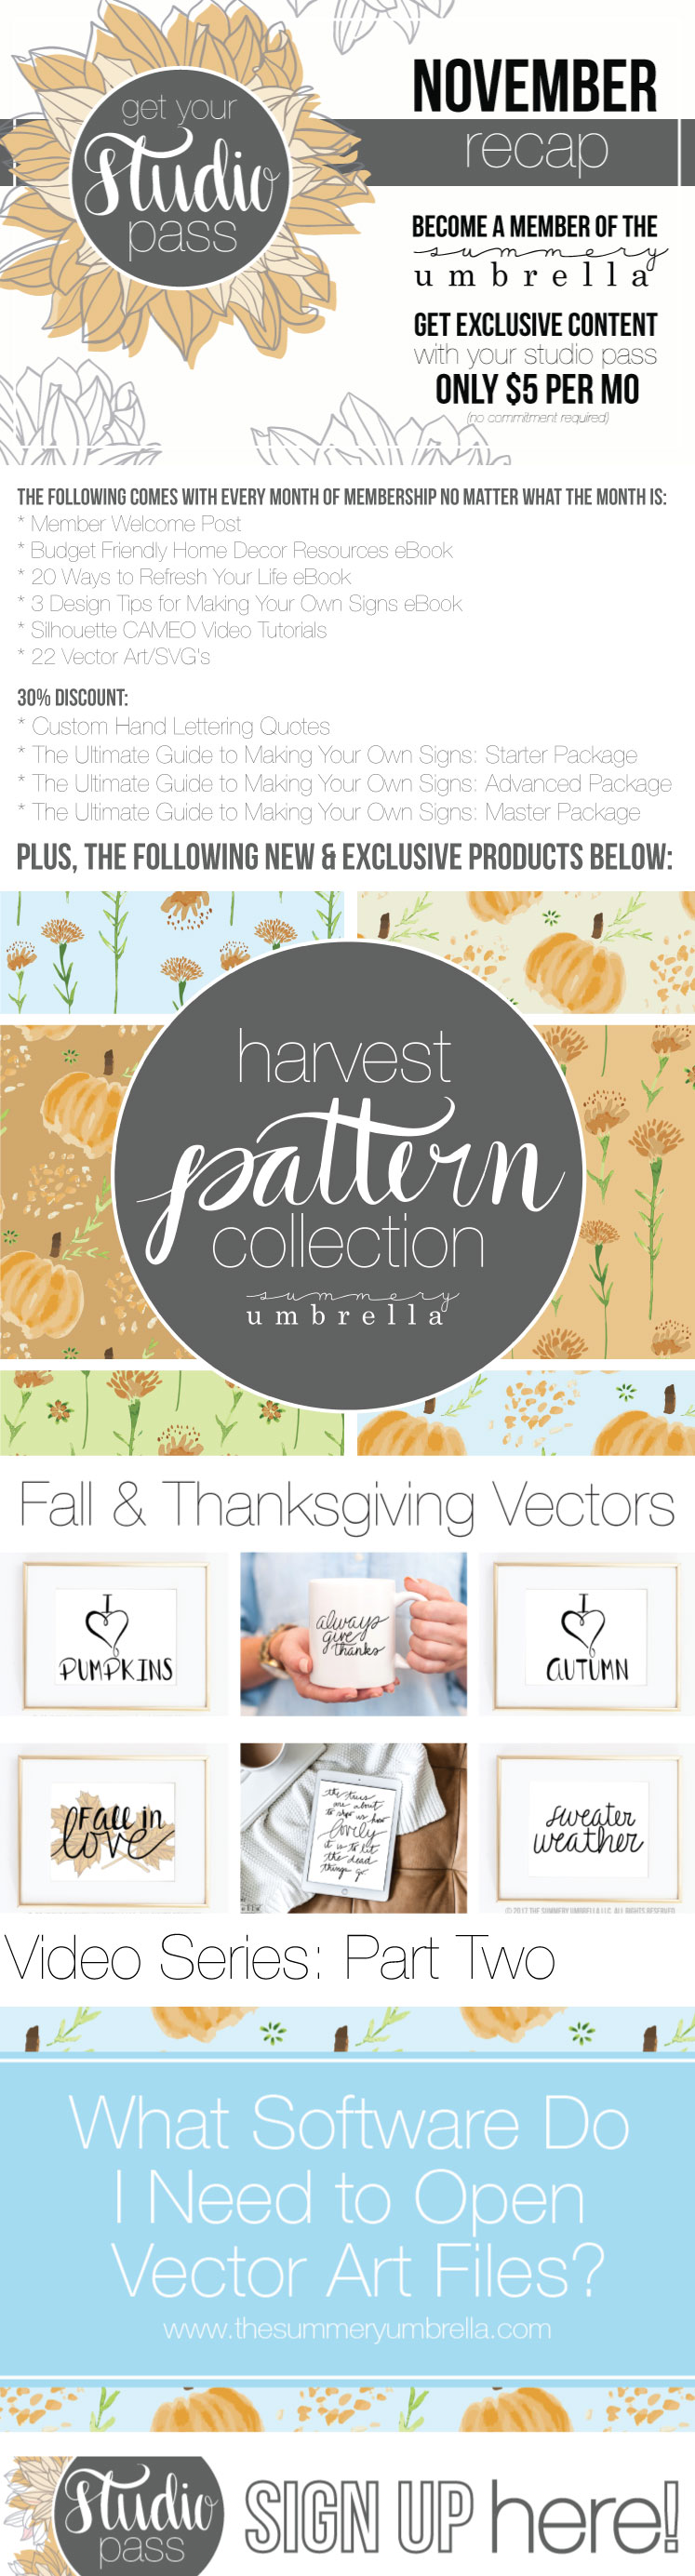 Vector artists unite! Join us for exclusive crafts tutorials, custom SVG files, and more. Check out this November Recap for more info, and then get yours today!